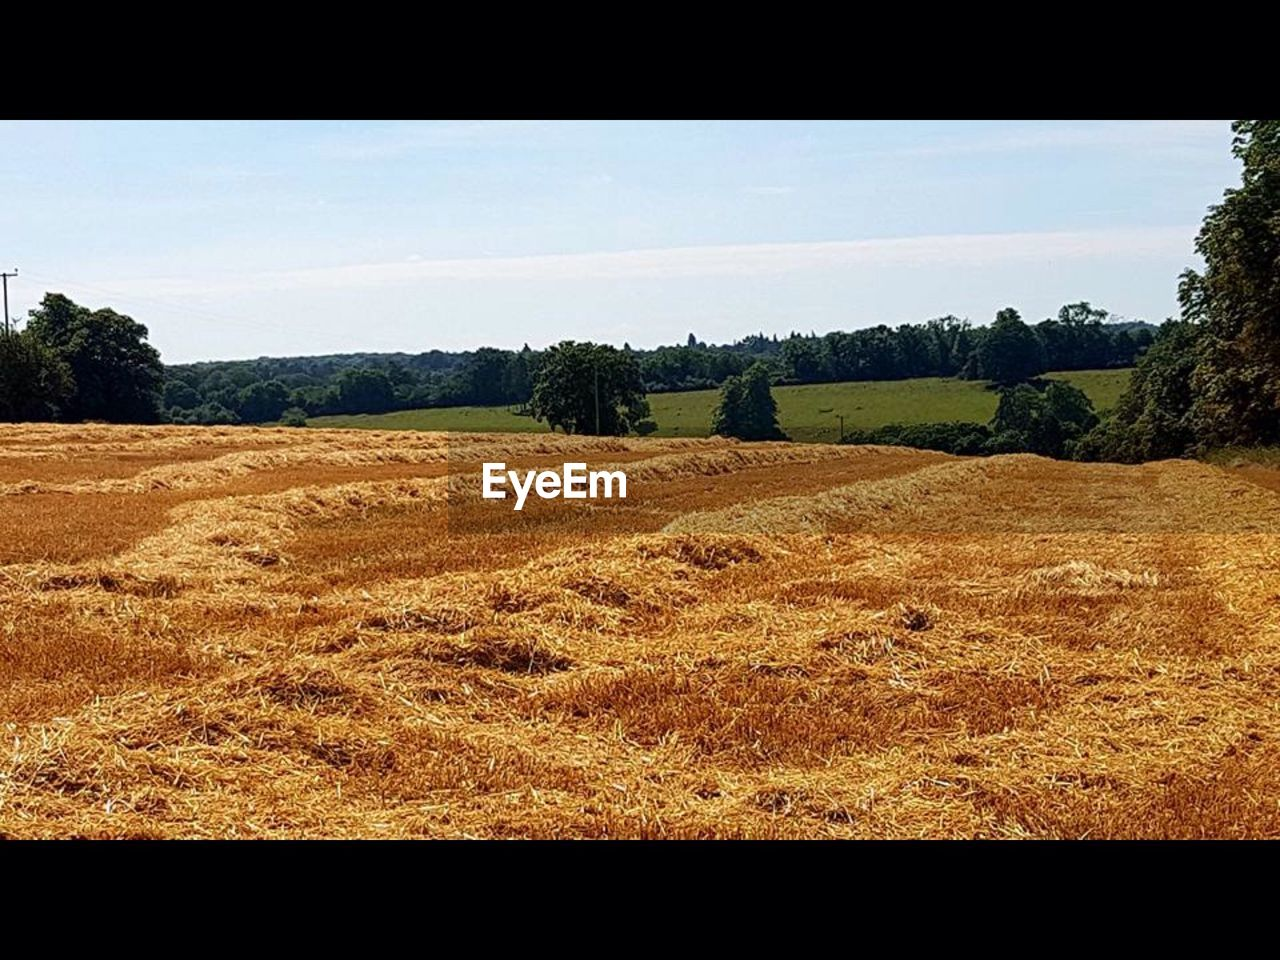 landscape, field, tranquility, tranquil scene, tree, nature, agriculture, scenics, no people, rural scene, day, hay bale, outdoors, beauty in nature, sky, grass, clear sky